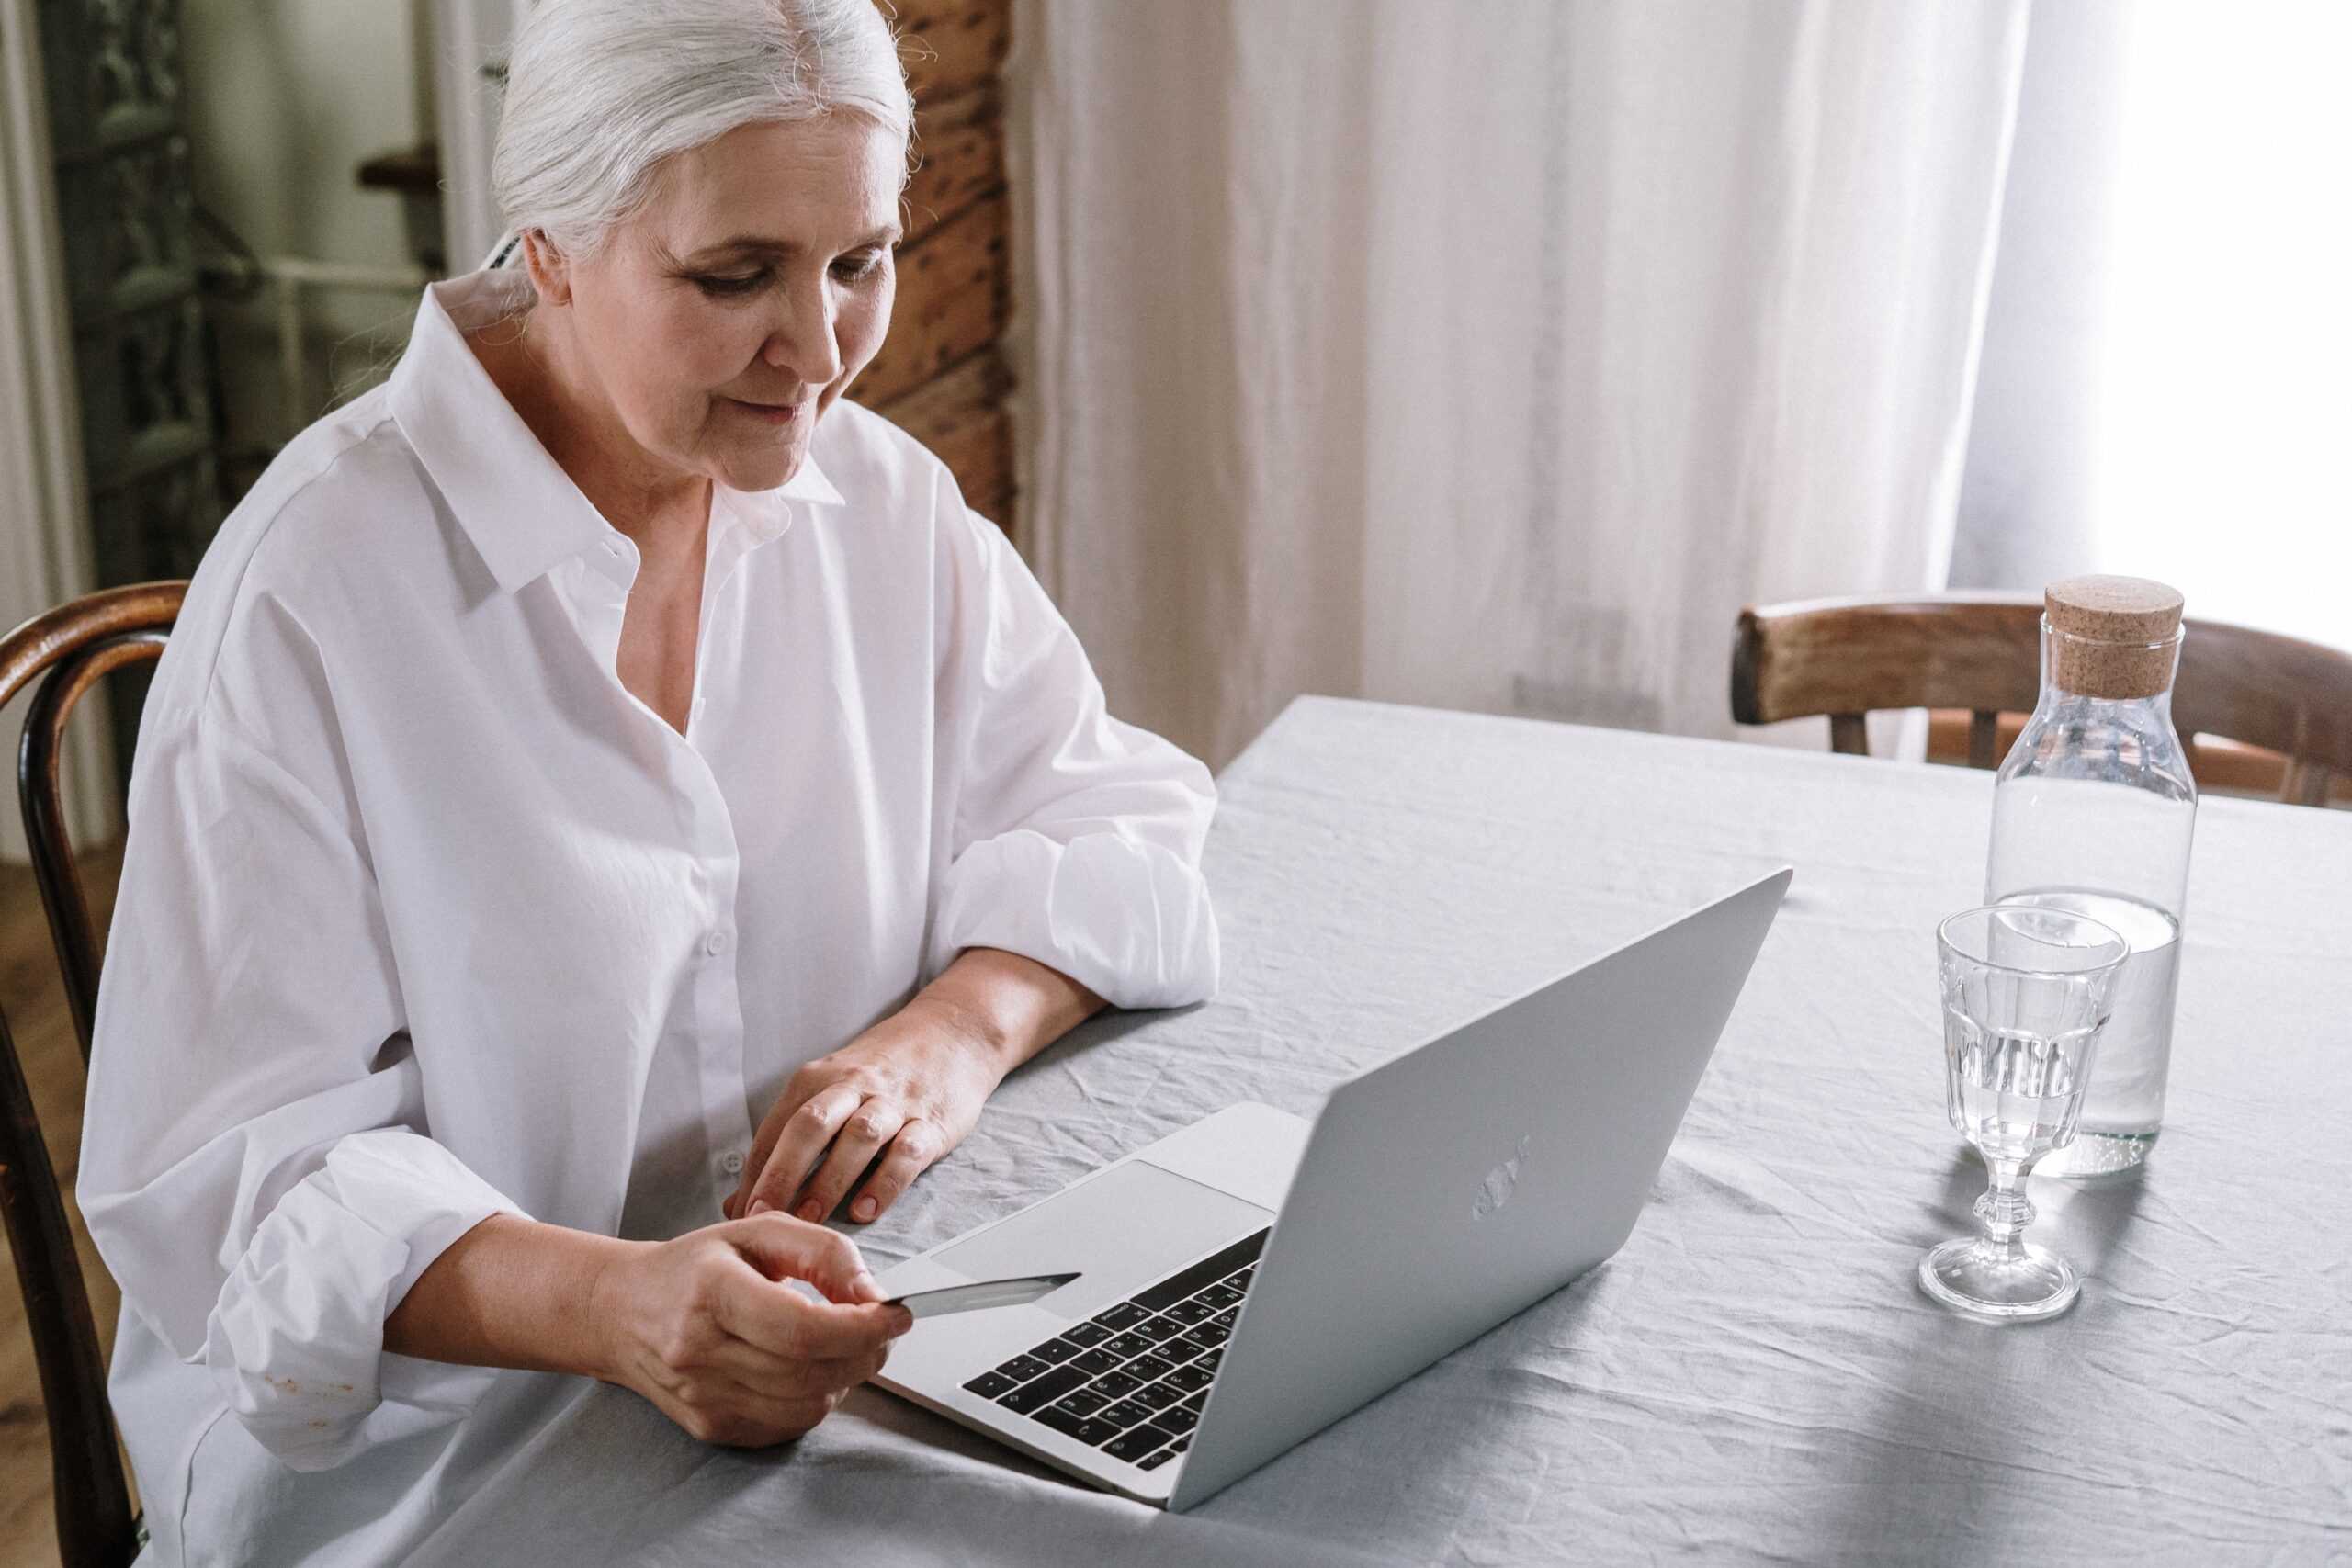 Winding down self-employment and planning for retirement